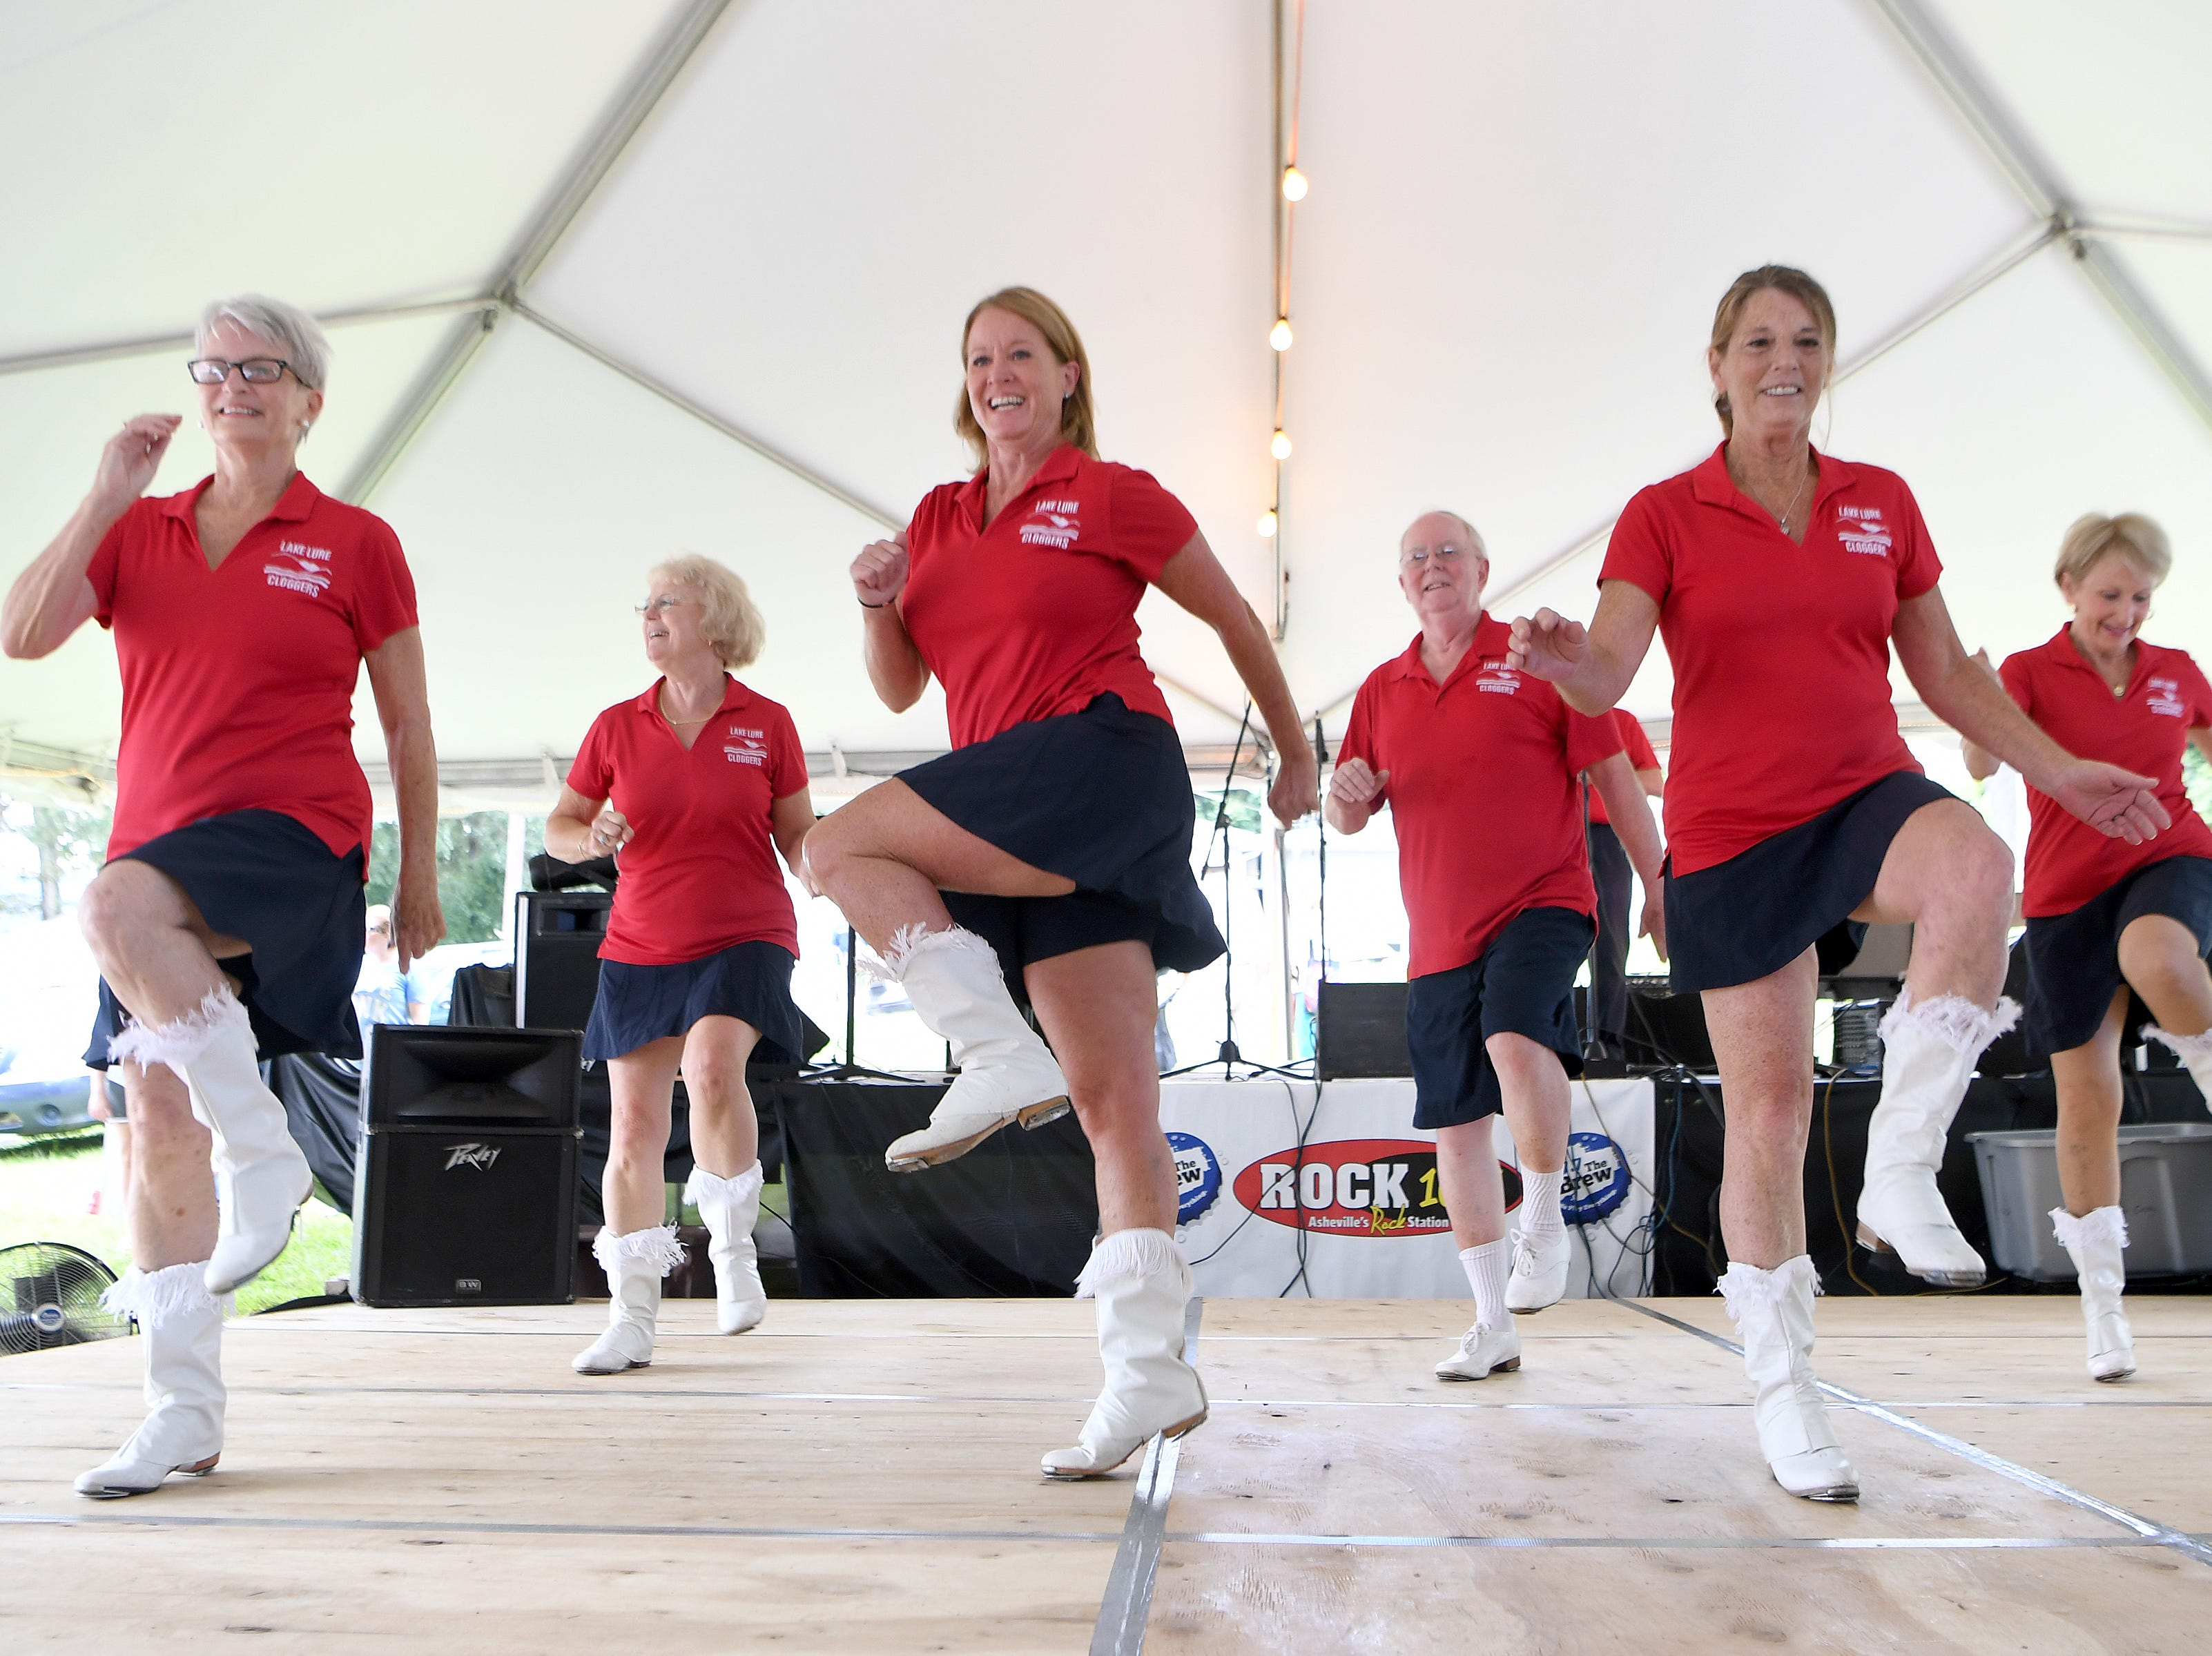 The Lake Lure Cloggers perform during the 41st annual Sourwood Festival in Black Mountain on Saturday, Aug. 11, 2018.